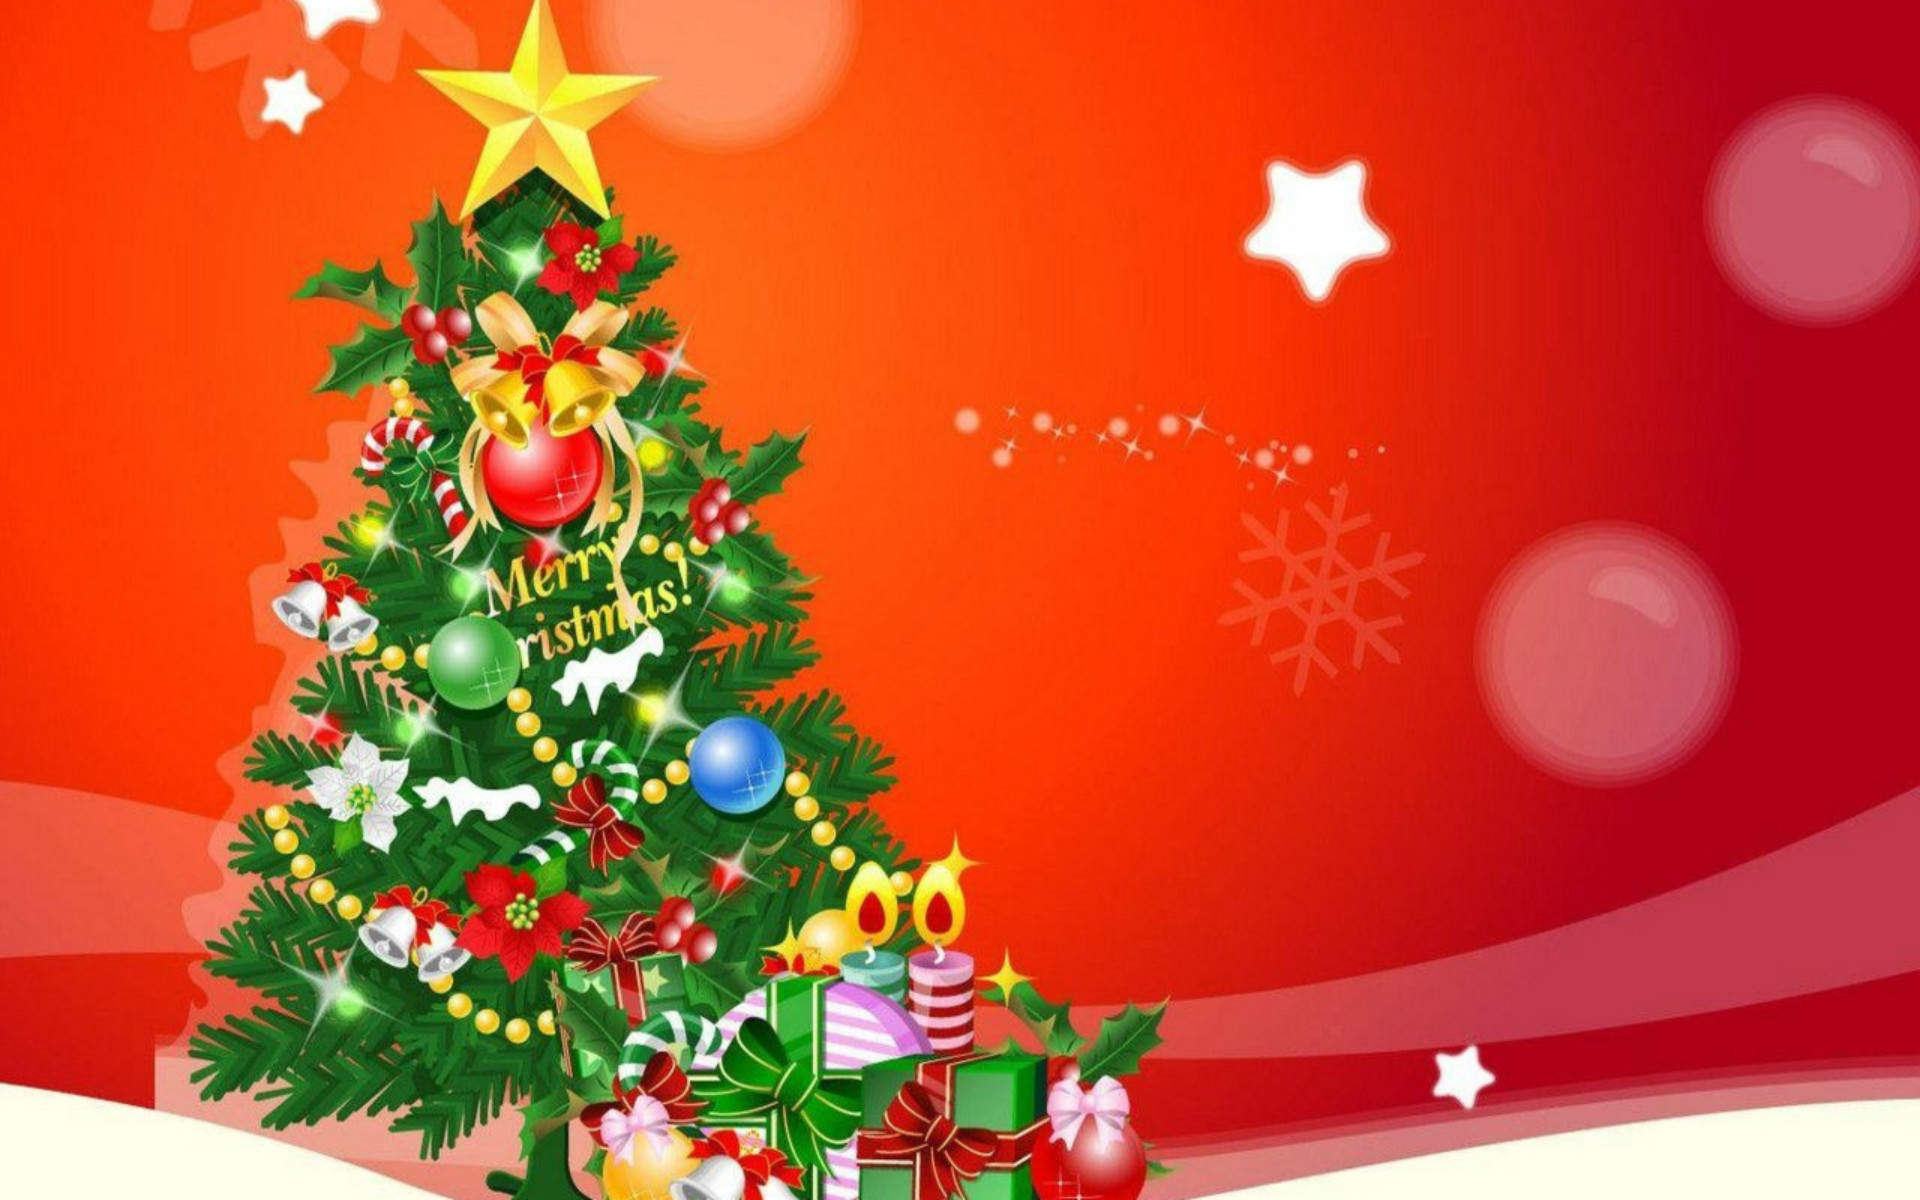 Wallpaper Holiday - Merry Christmas Background Hd , HD Wallpaper & Backgrounds